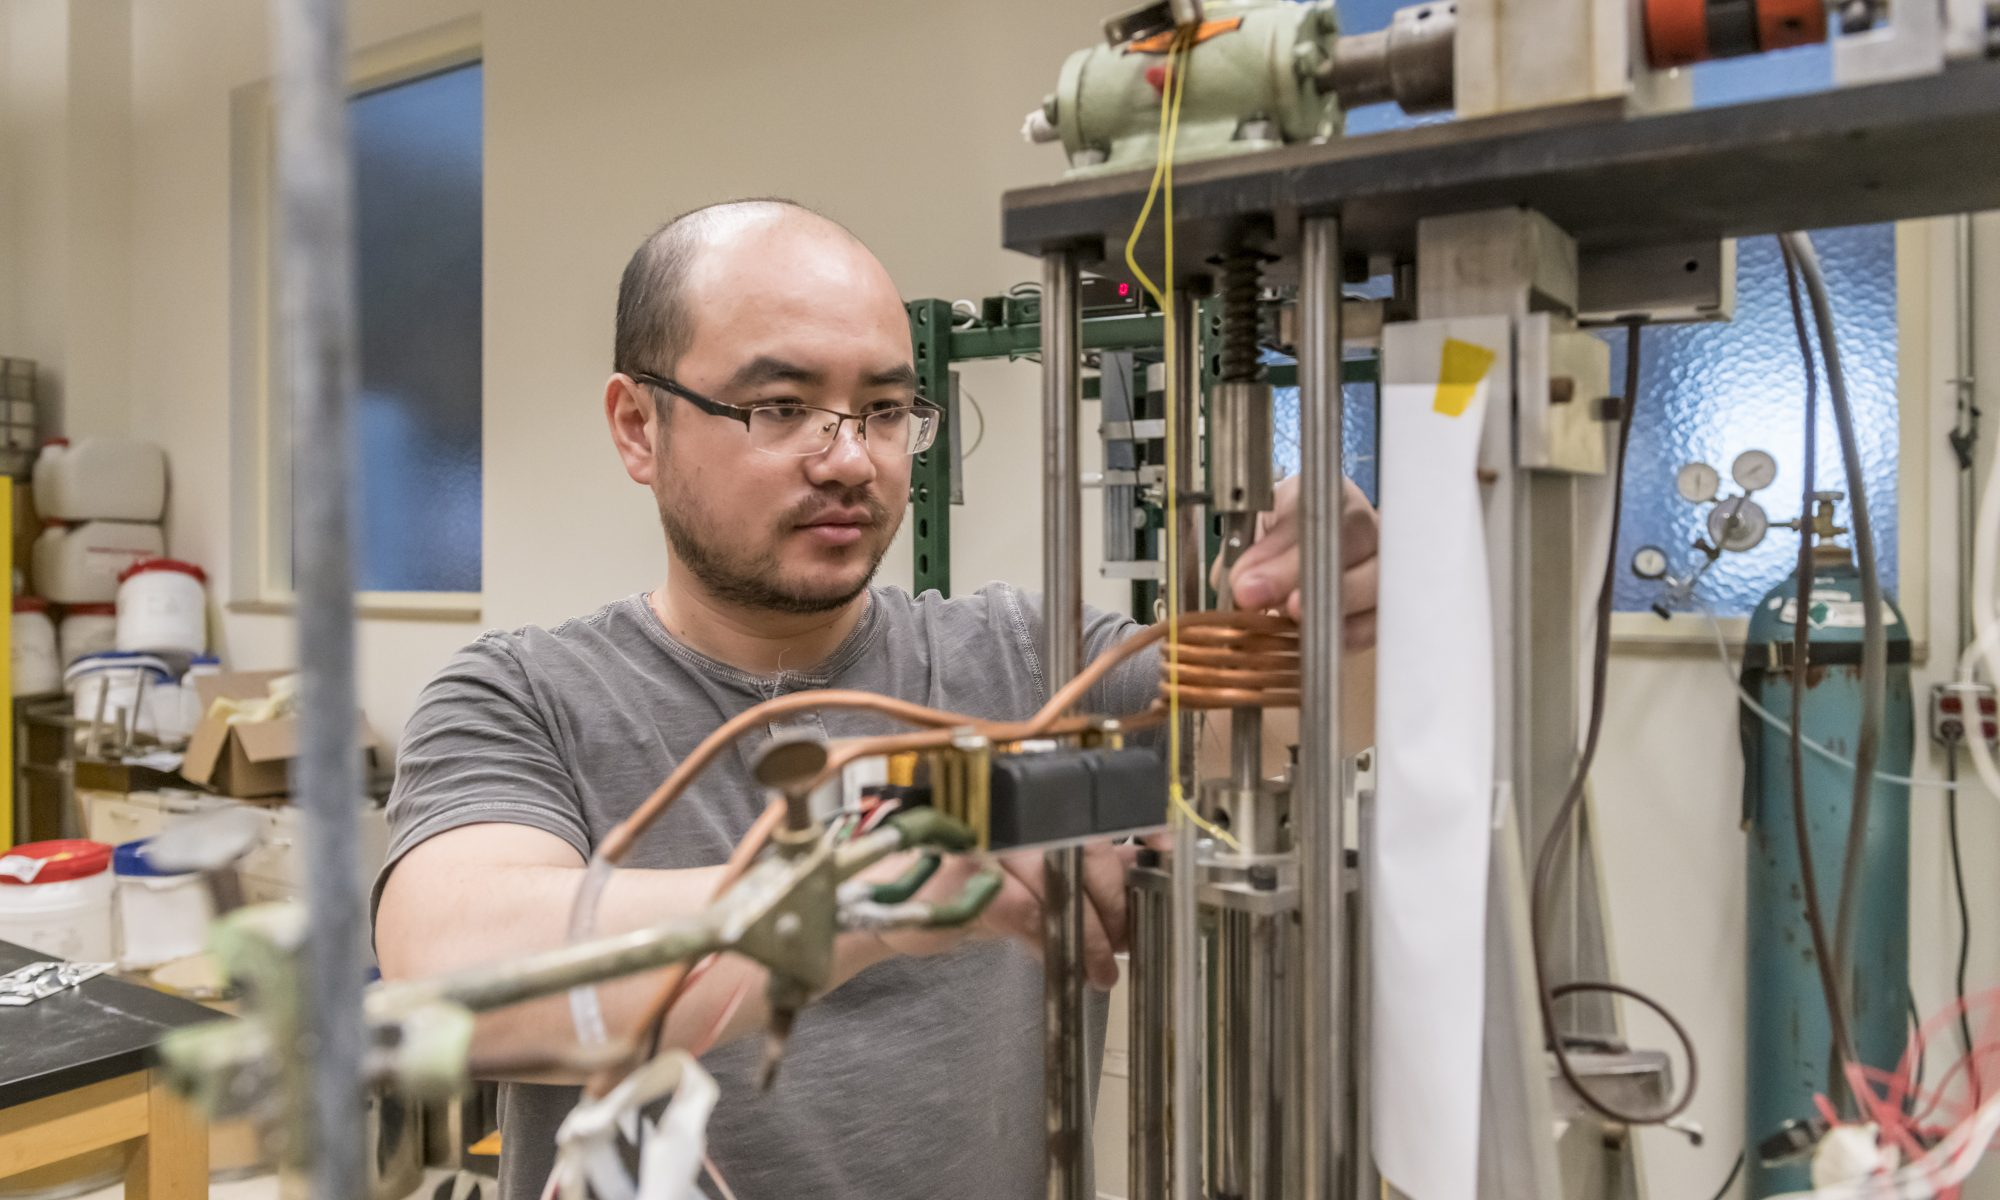 Pixiang Lan, Lead Operations at ATSP Innovations, Works in the EnterpriseWorks Laboratory